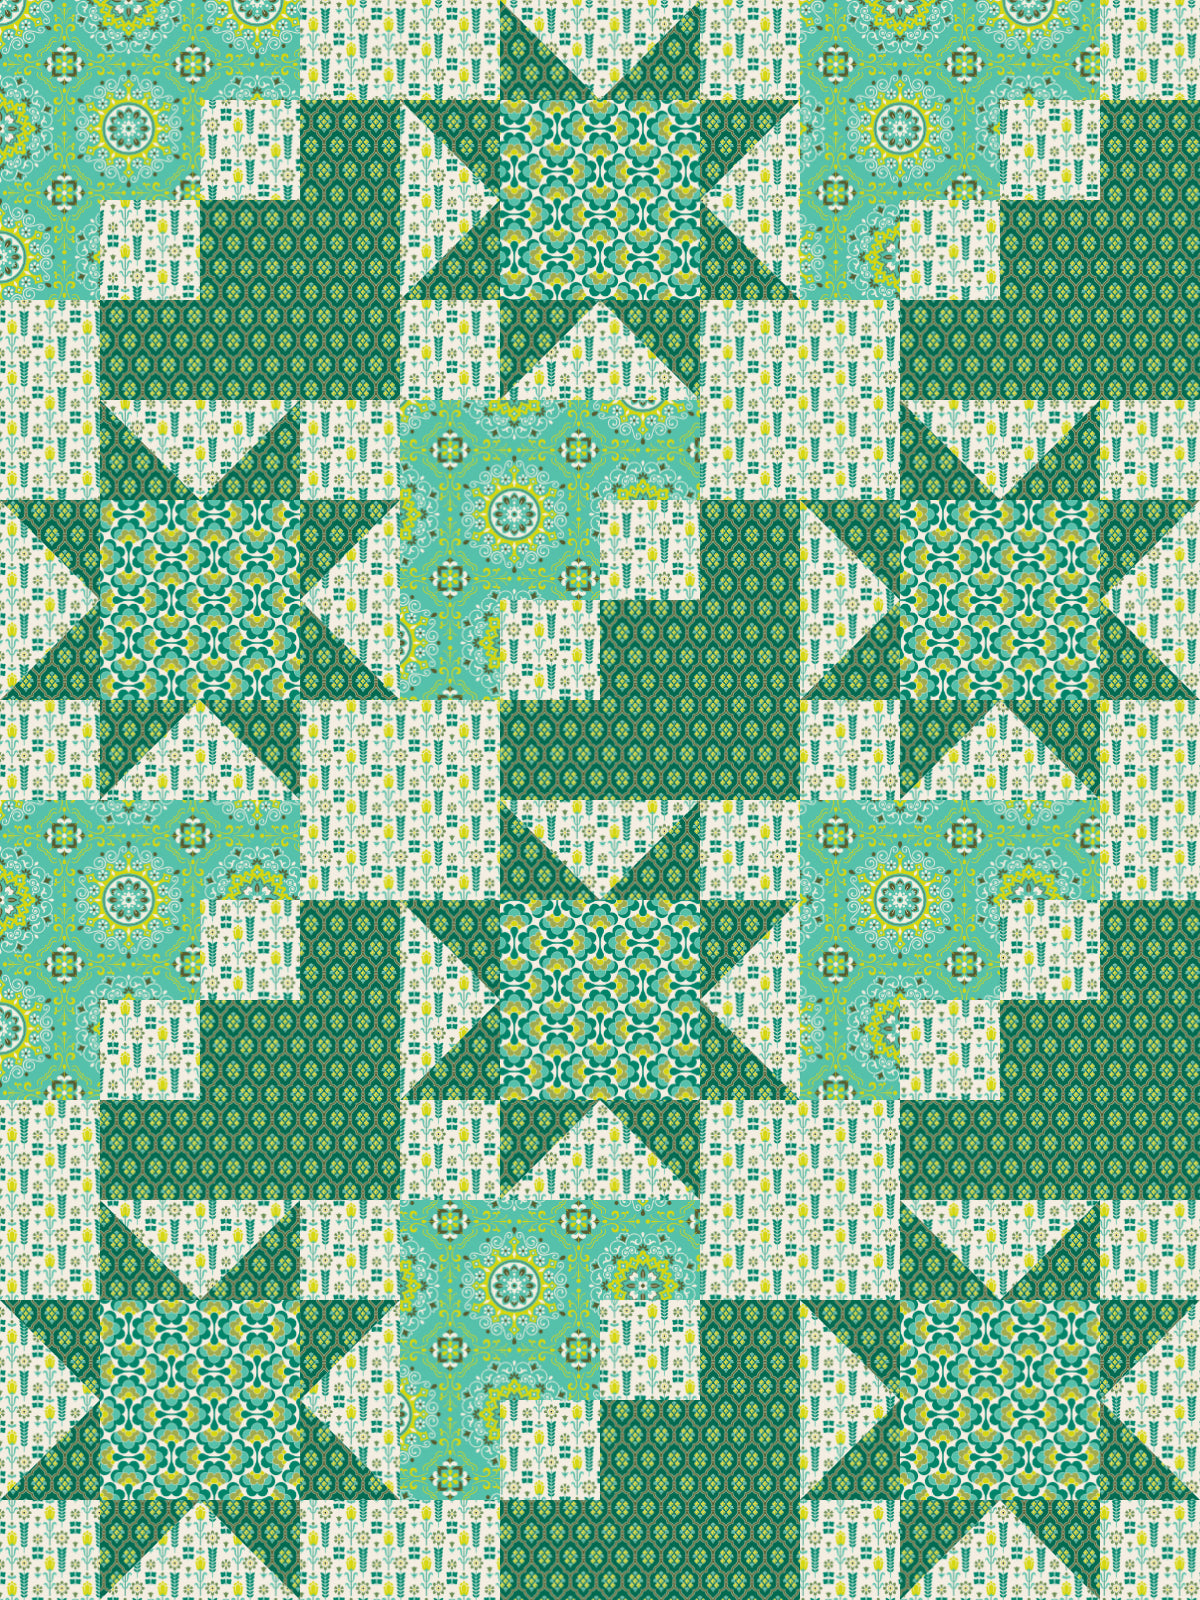 Green - 56 x 75 Ready-To-Quilt Fabric Panel